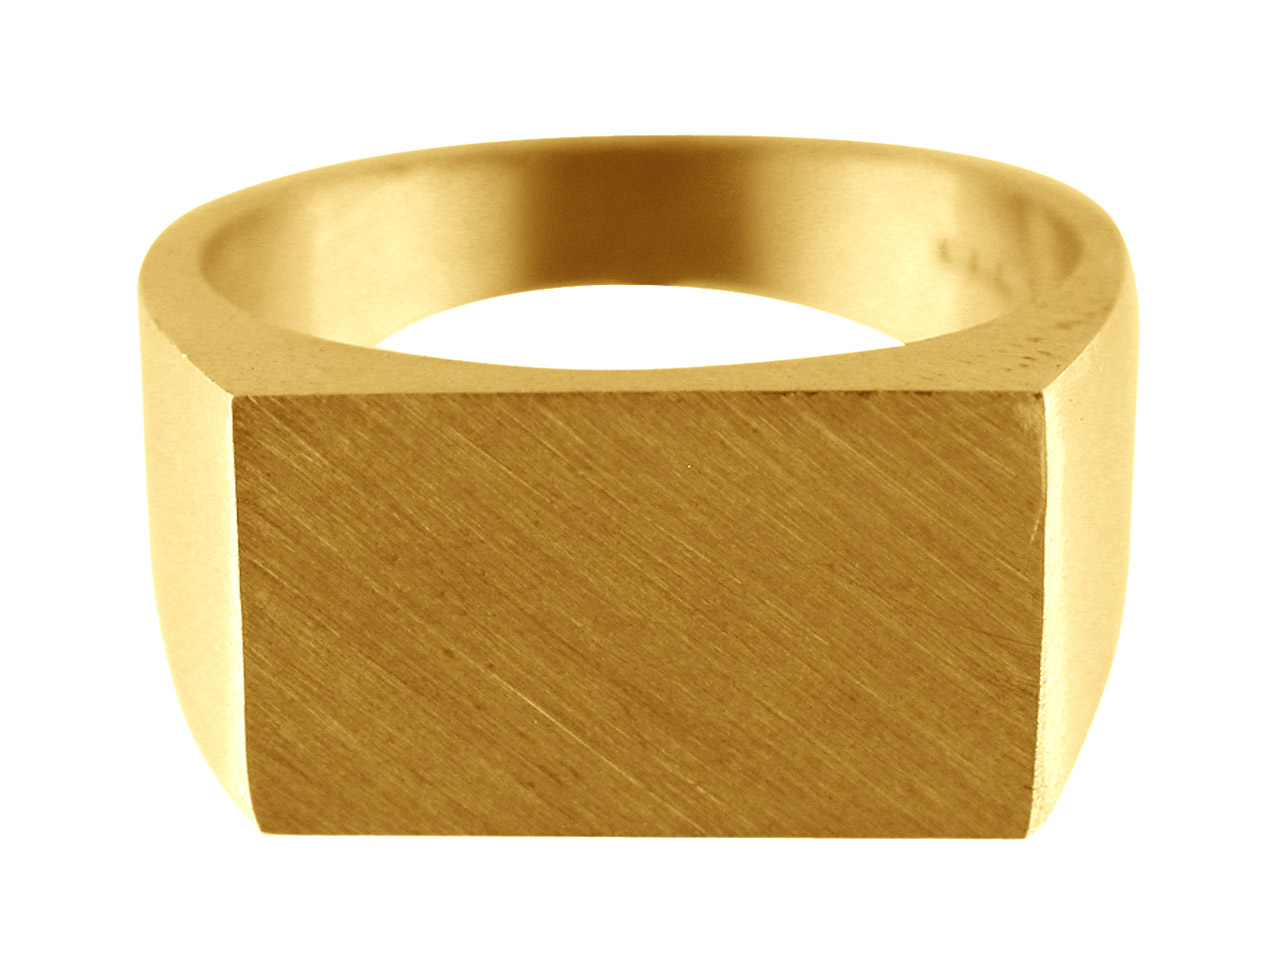 9ct Yellow Gold G8 Initial Ring     Rectangular 17x12mm Hallmarked Head Depth 2.9mm Size S